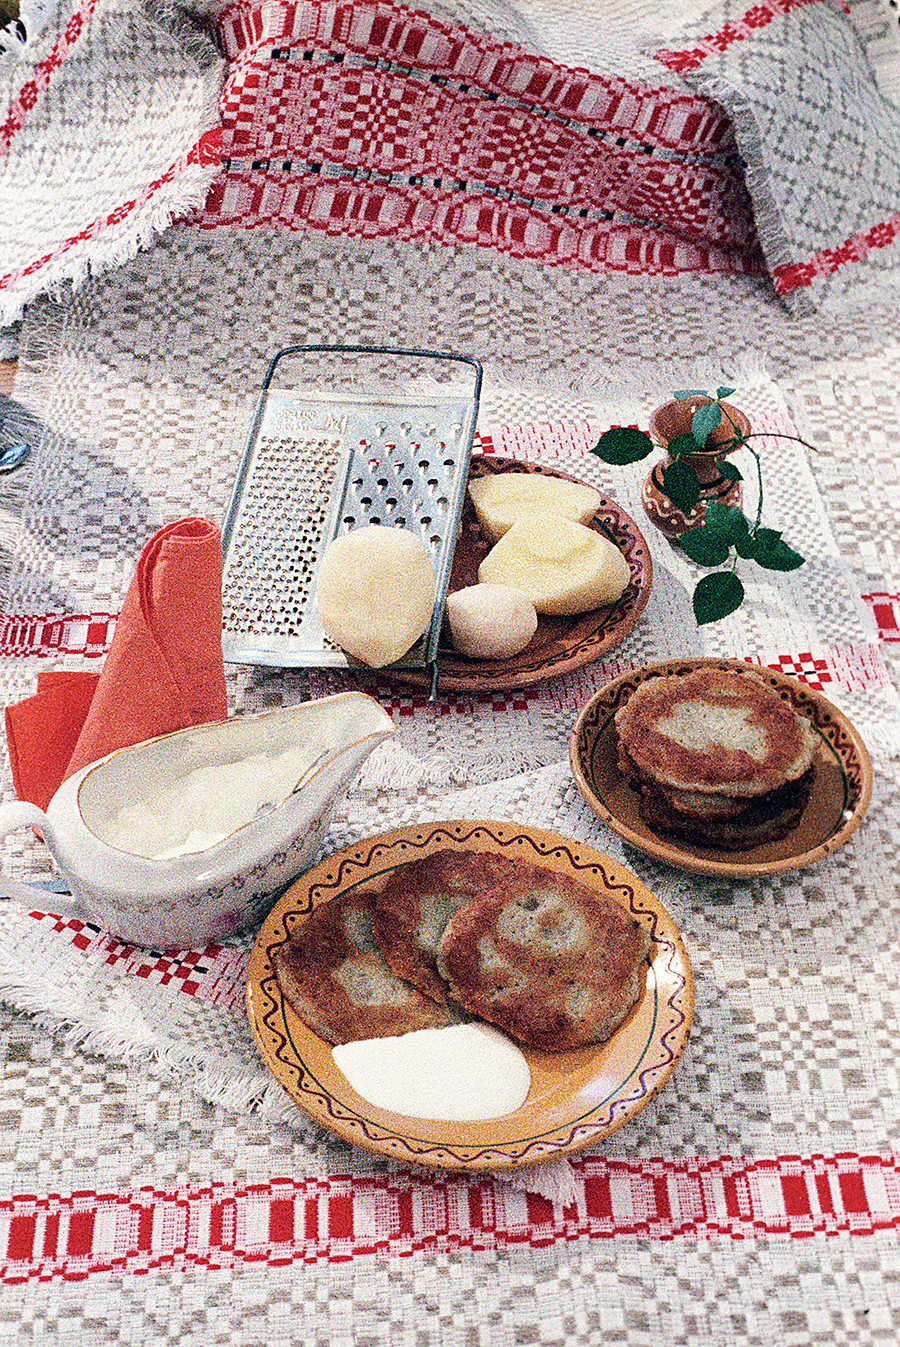 Potato pancakes, 1987